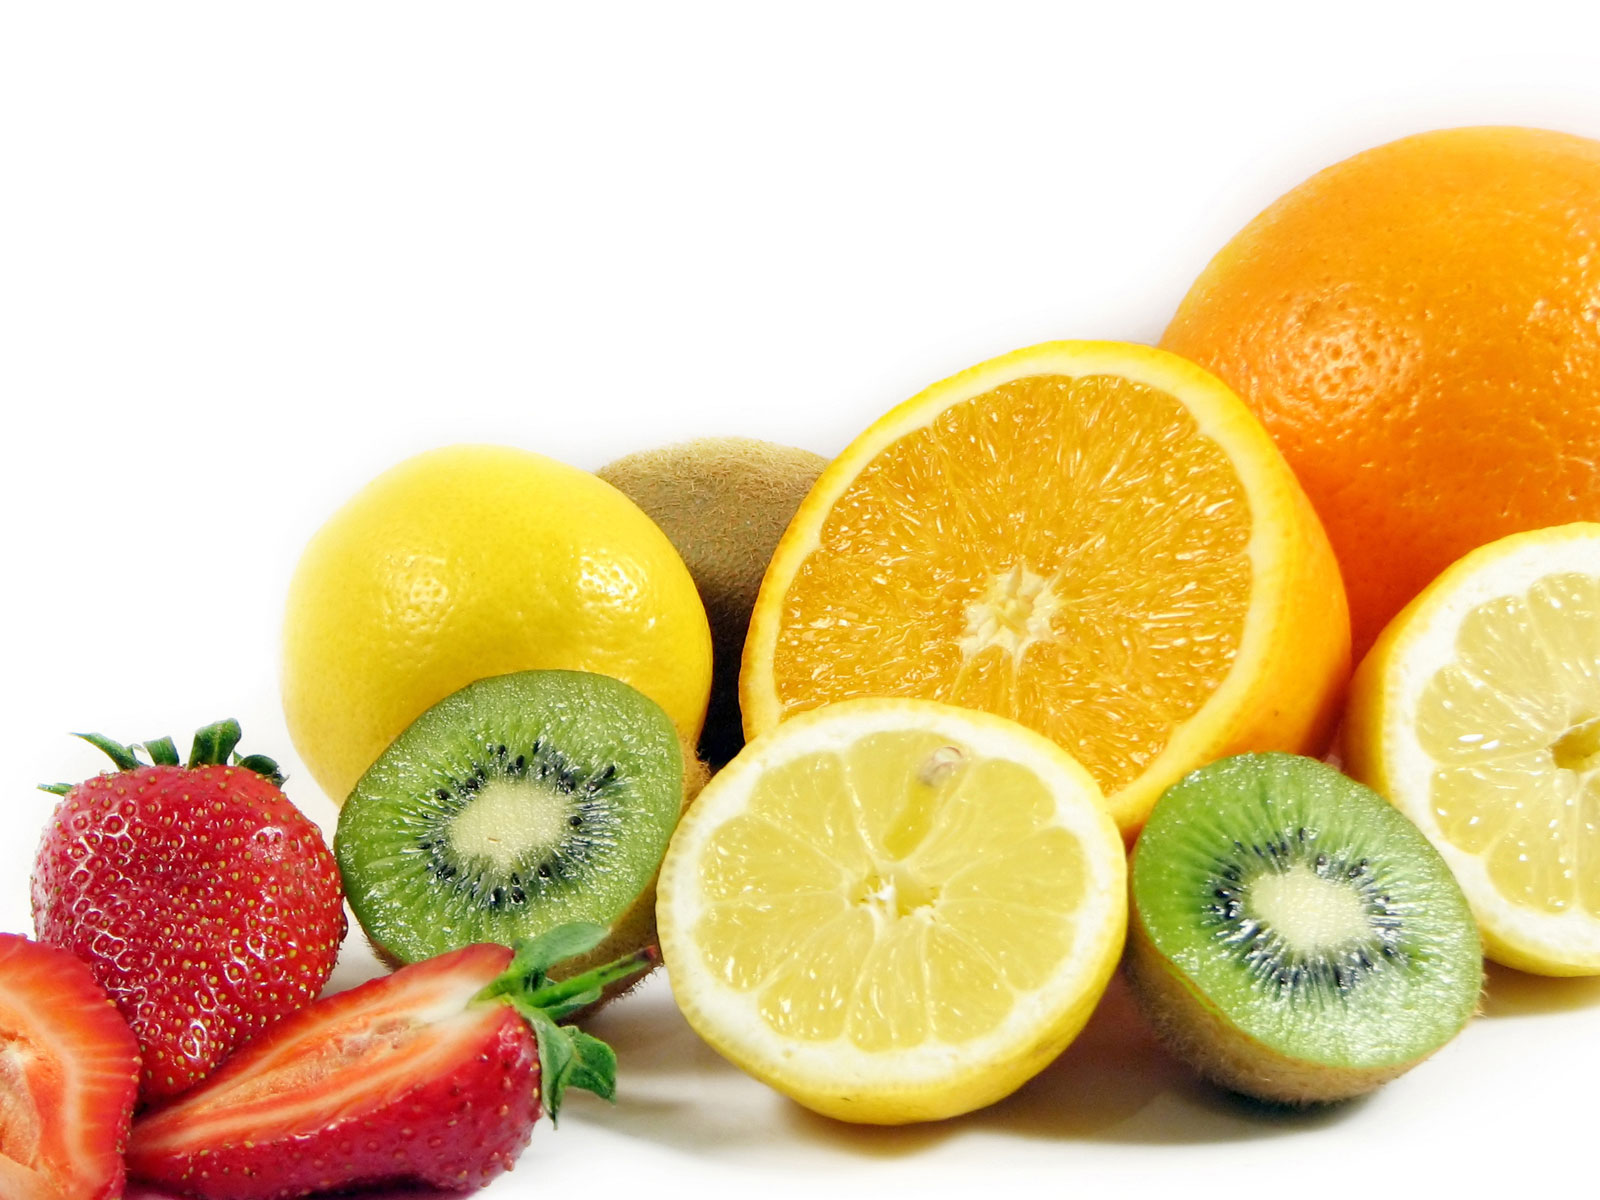 fresh fruits wallpapers desktop mix fruits fresh fruits wallpapers 1600x1200